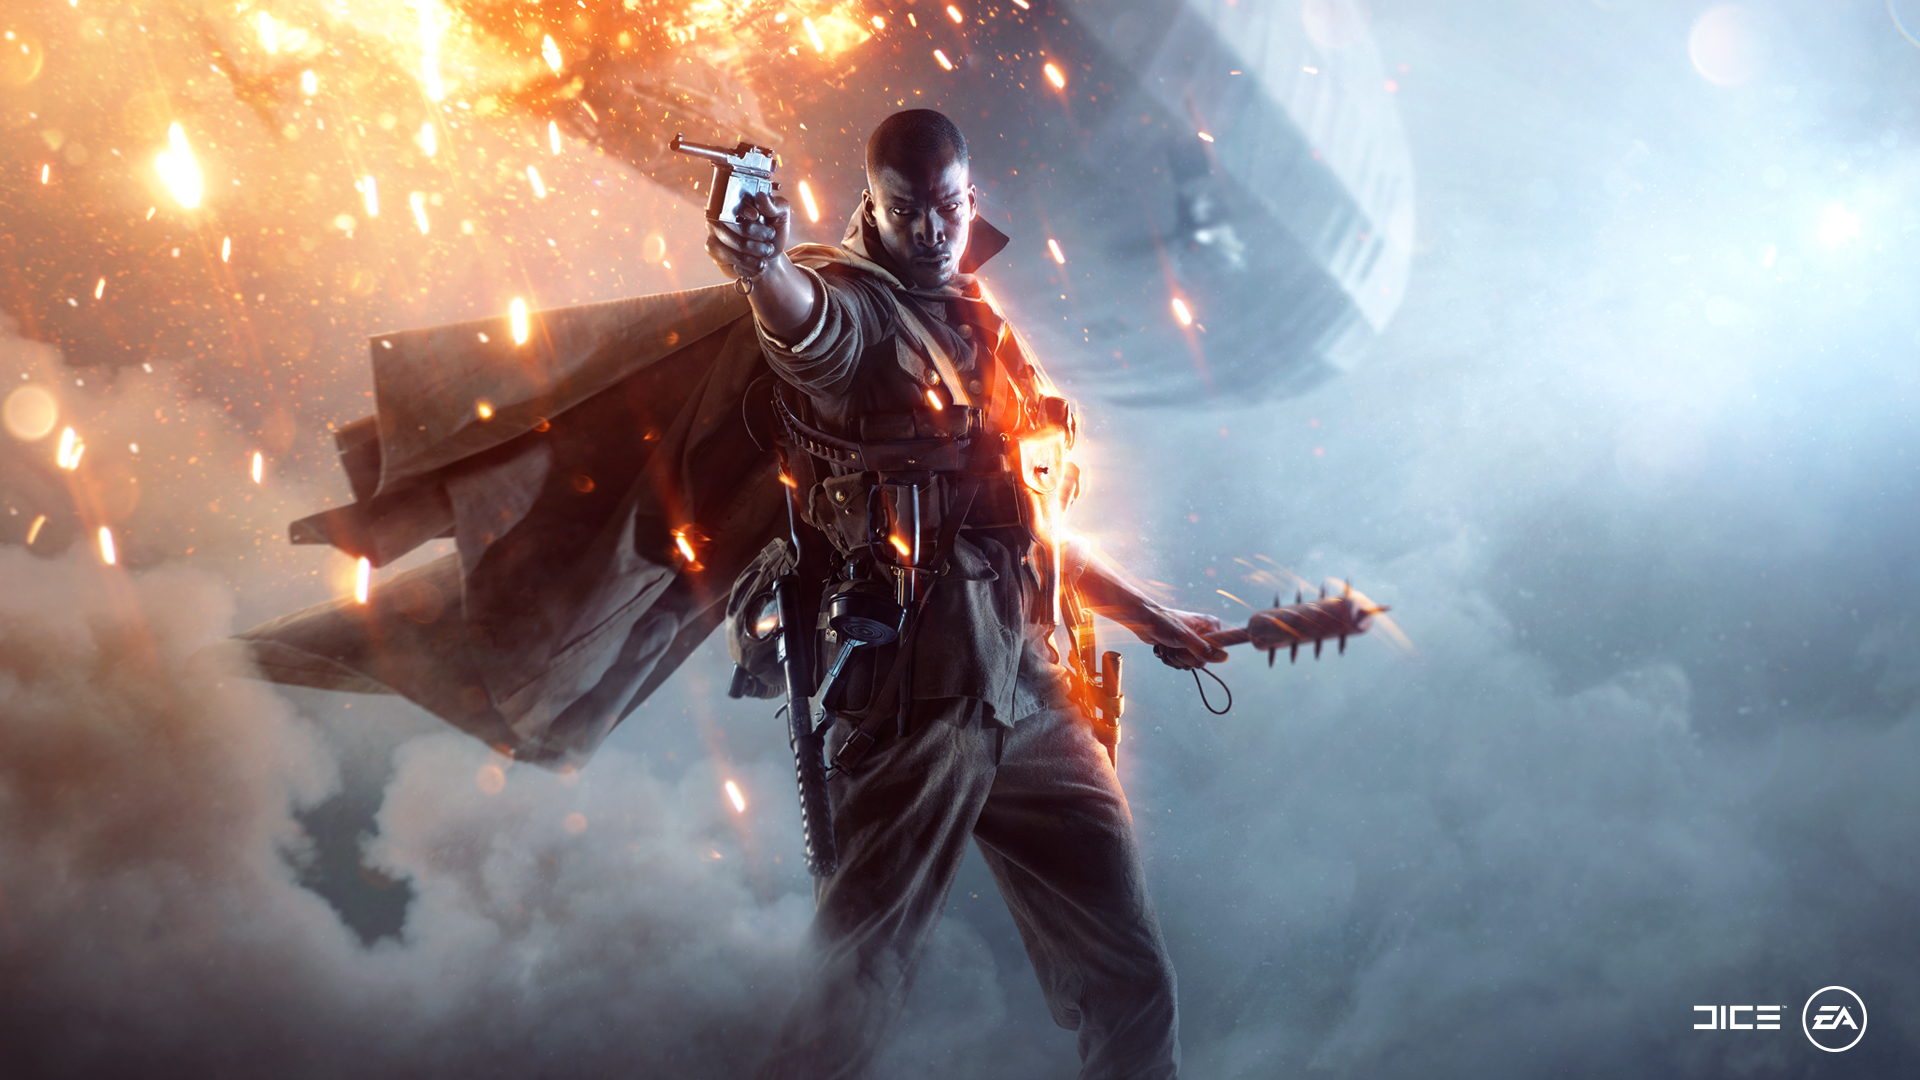 10 New Hd Wallpapers 1080p Games Full Hd 1920 1080 For Pc: Battlefield 1 Wallpapers For PC, Mobile, And Tablets